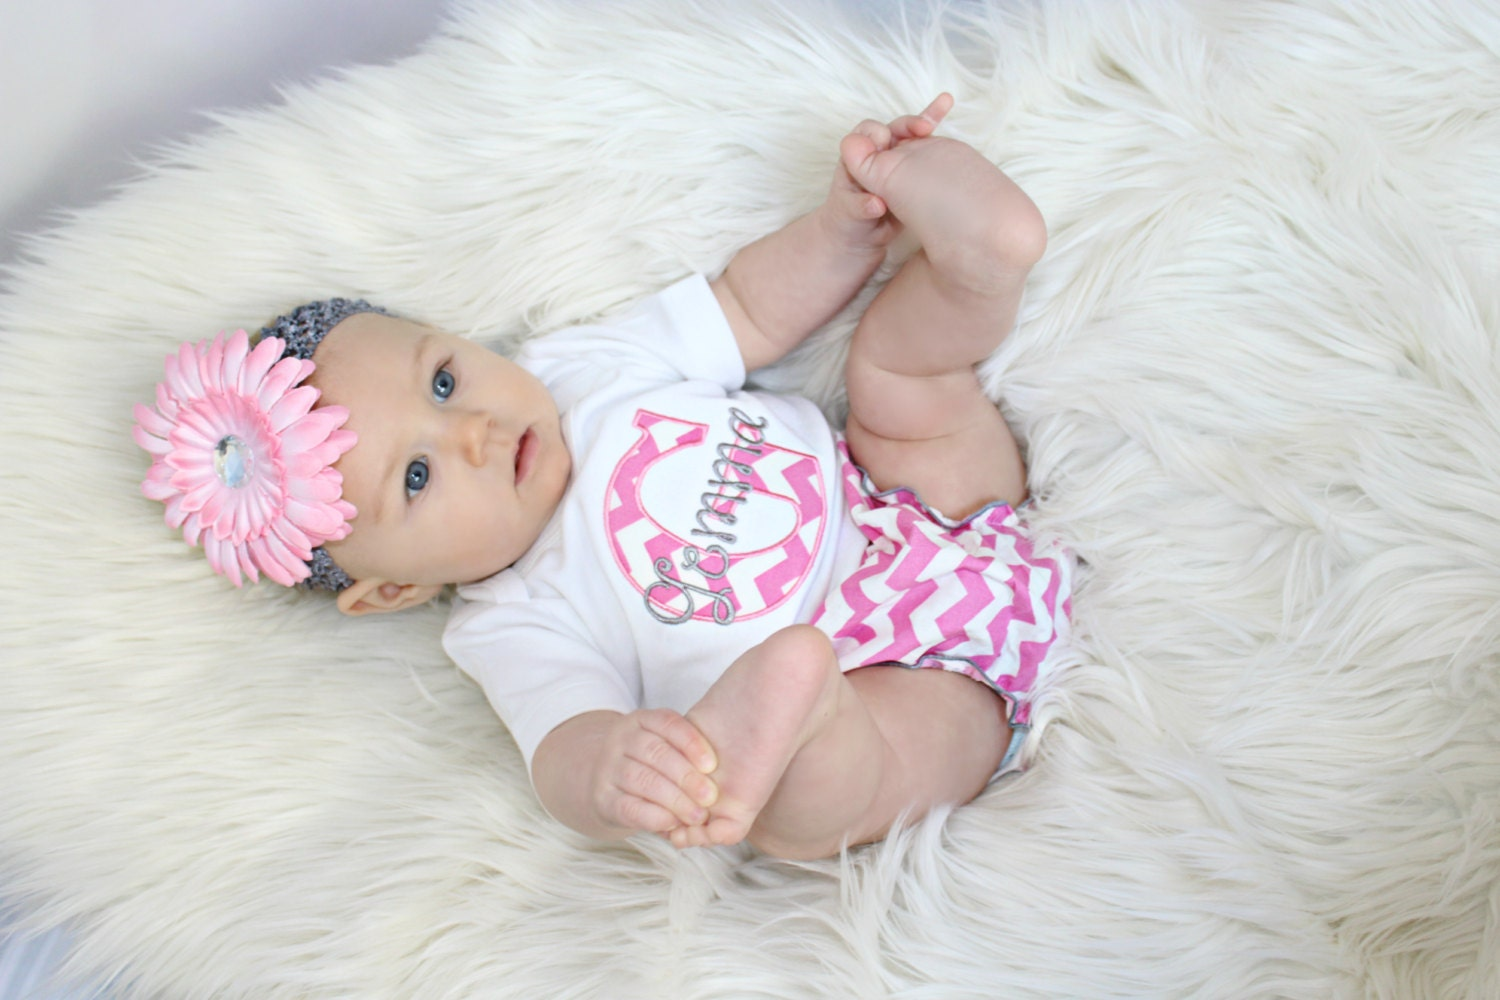 Baby Girl Clothes. Baby Tops & T-Shirts. Baby Boy Clothes. Diaper Covers. Unique Newborn Baby Clothes & Shoes. results. Category: Baby Clothes & Shoes. All Products Clothing & Shoes Cute and unique baby body baby bodysuit. $ 15% Off with code SHOPPINGZAZZ. Surfer Bambino Baby Jersey Bodysuit.